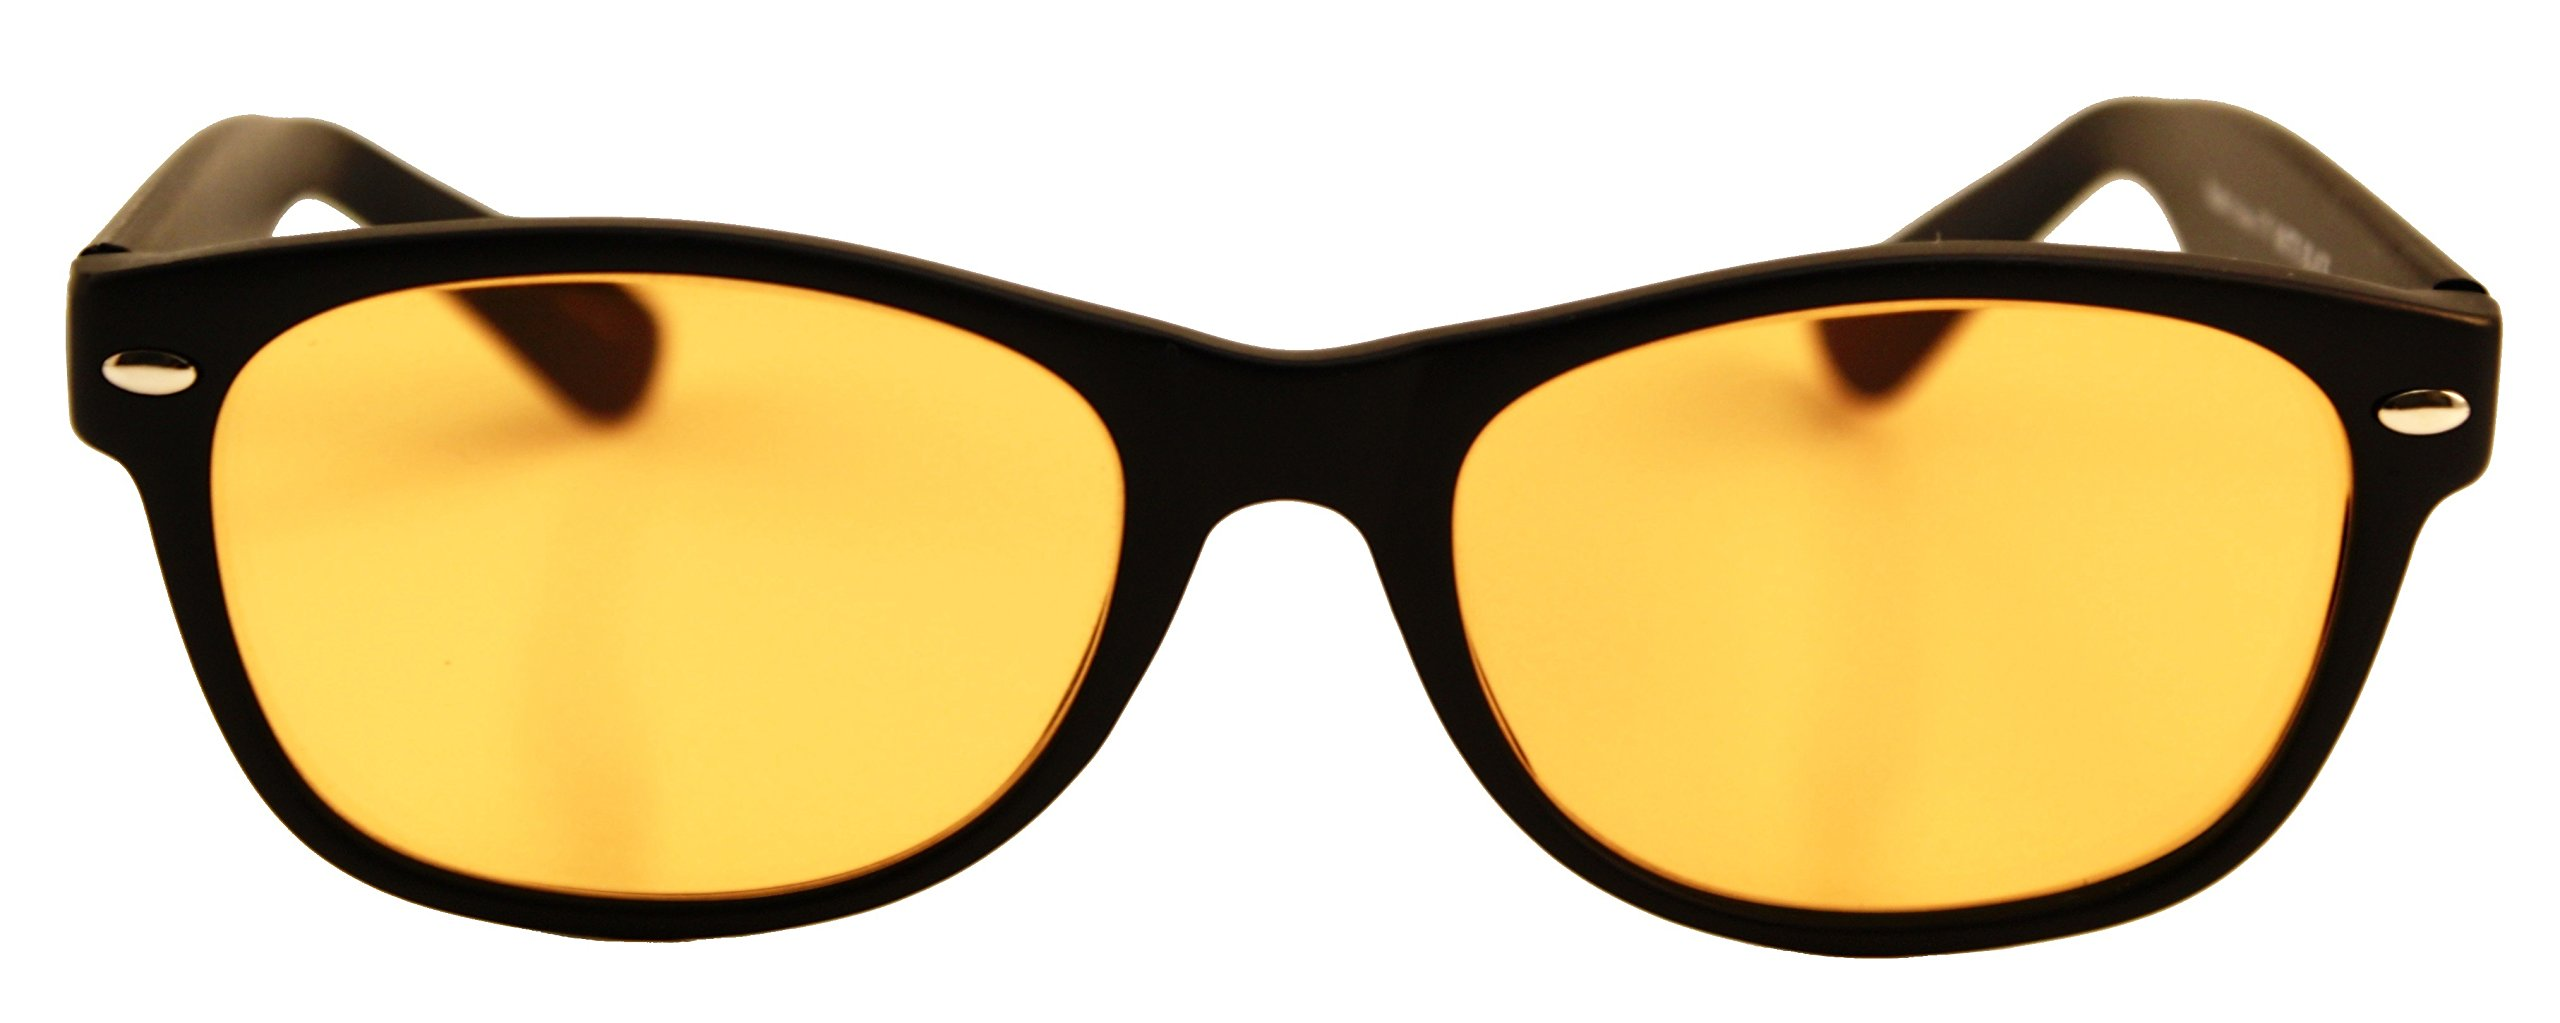 Computer Glasses with Melanin [Melatonin Production Factor (MPF) Rated]- Natural Eye Protection, Block/Filter Blue Light, Better Sleep, Better Health, Preserve Colors, Reduce Glare by MELAVISION (Image #1)